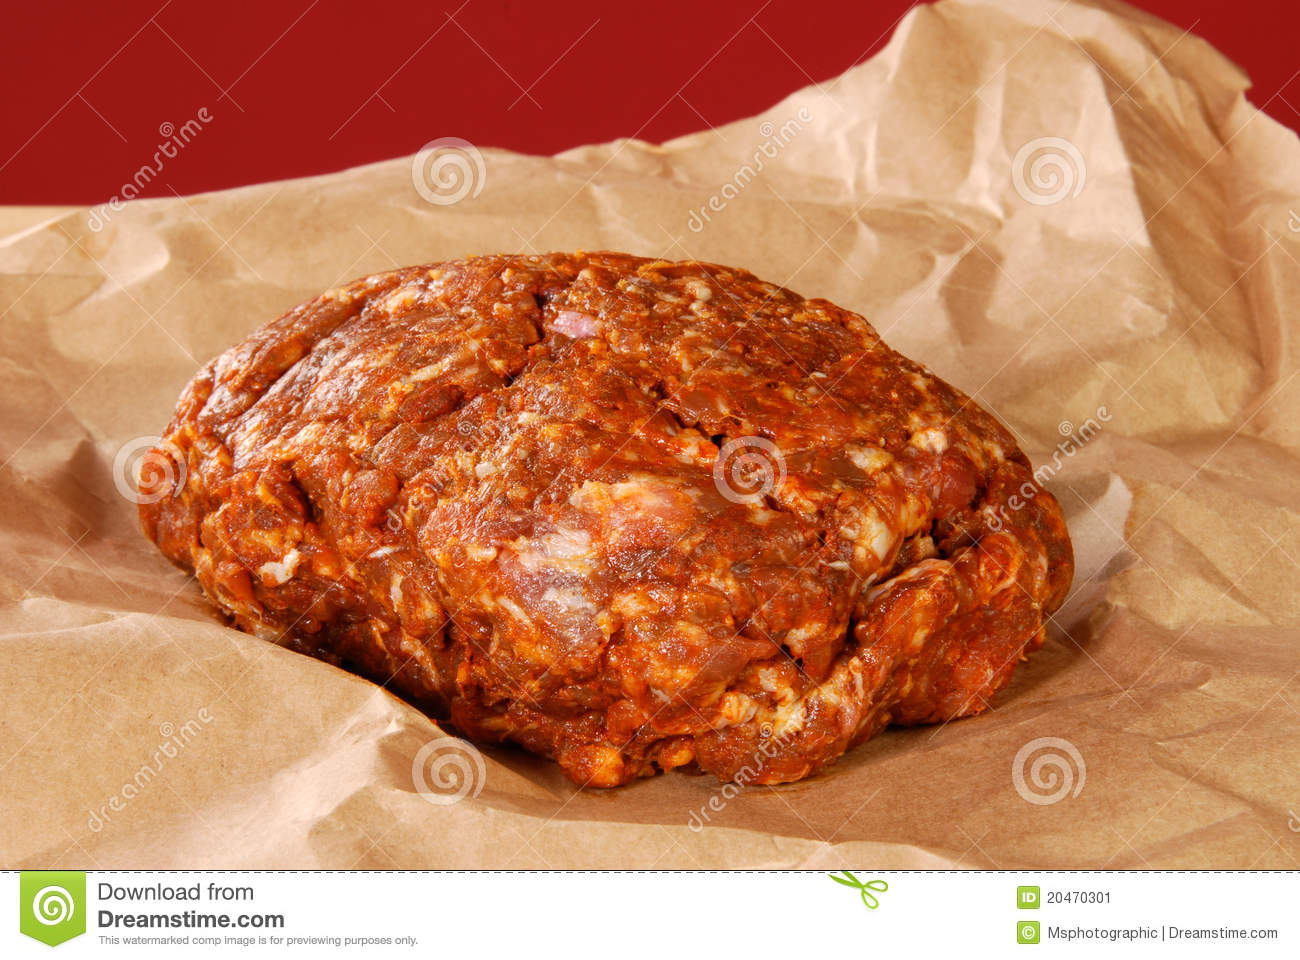 Choriso Pork Sausage Freshly Ground Stock Image - Image: 20470301